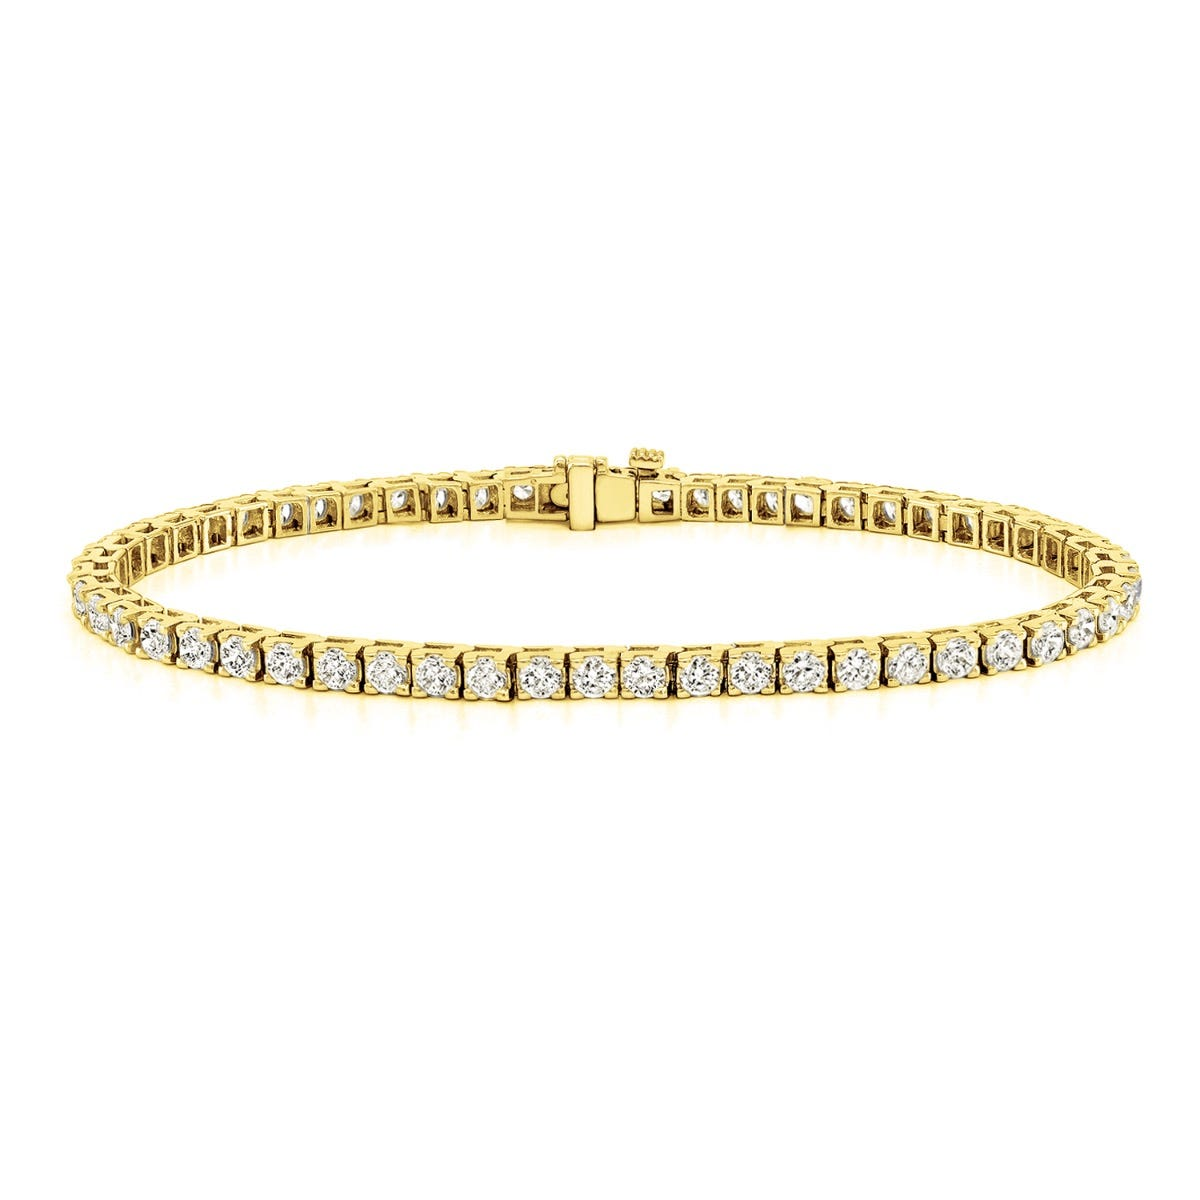 2.50ctw. 4-Prong Square Link Diamond Tennis Bracelet in 14K Yellow Gold (IJ, I1-I2)